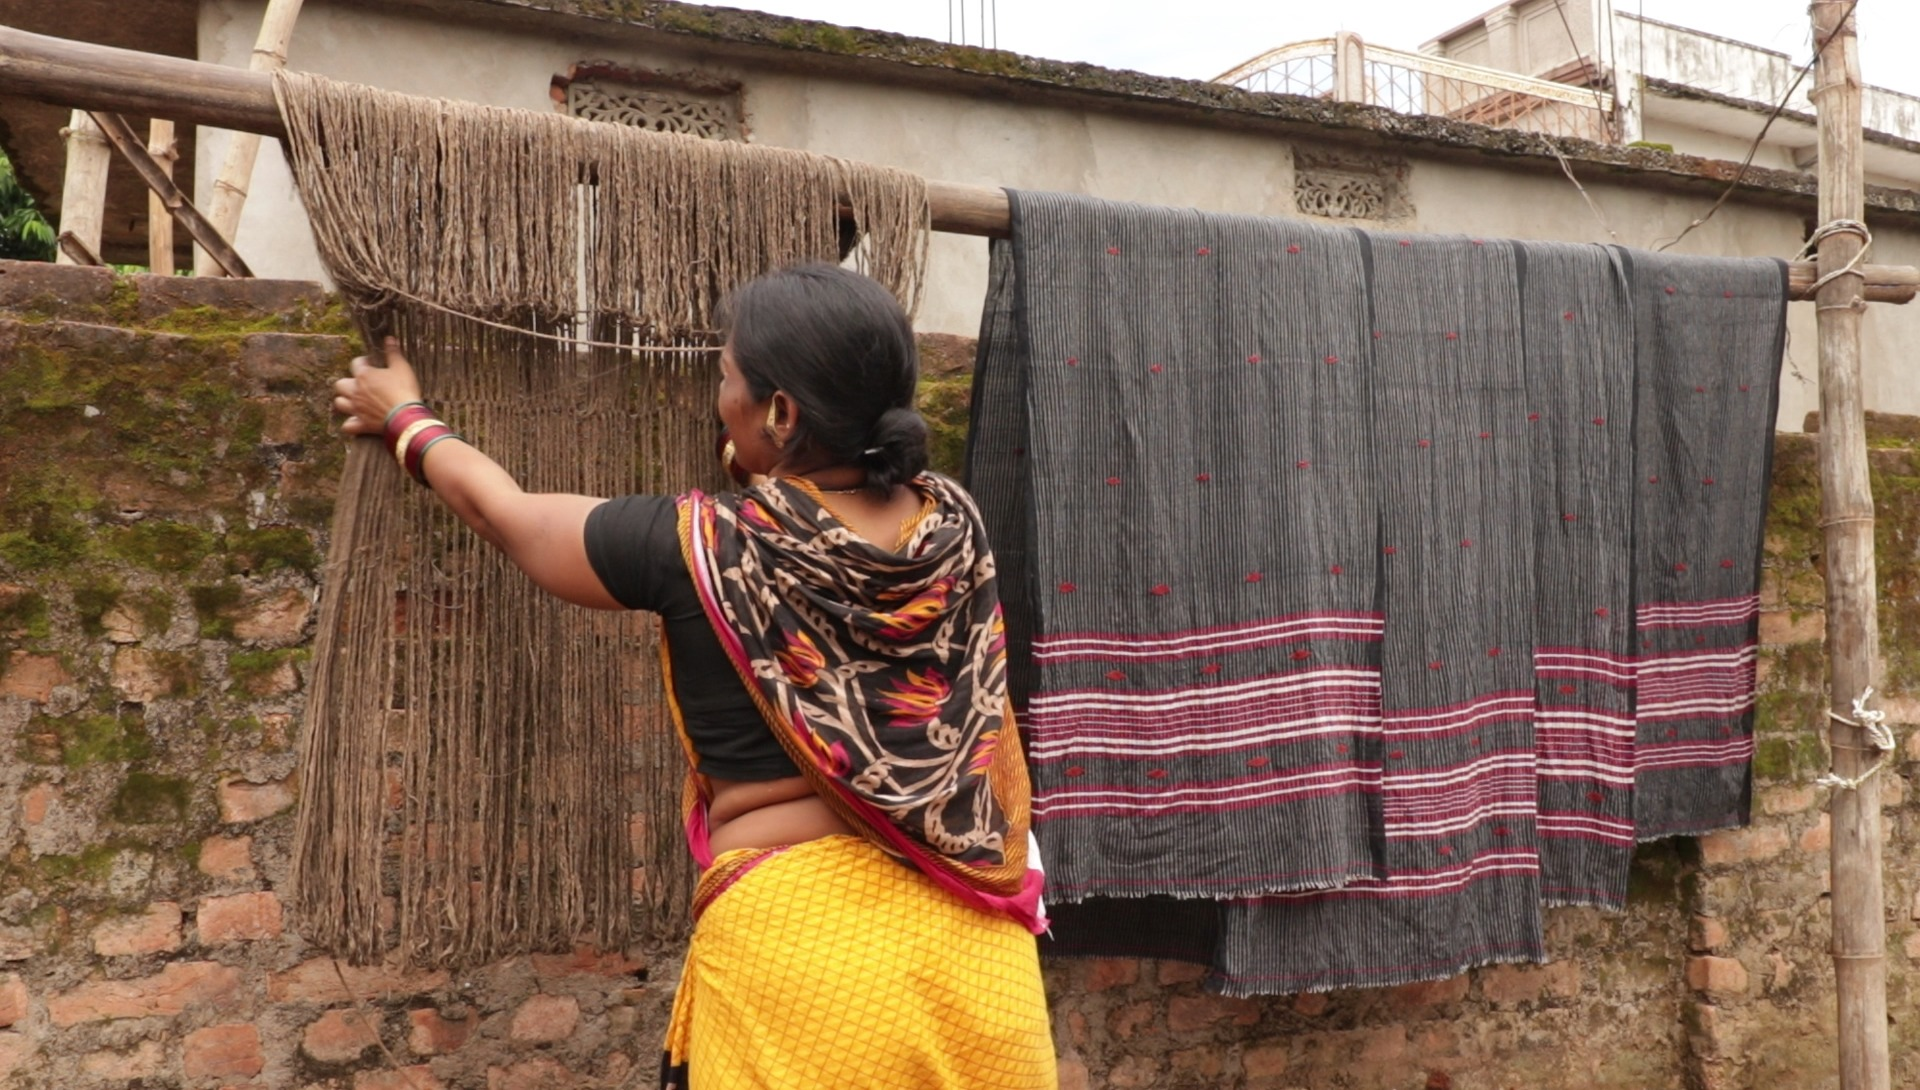 Keeping the yarn out of dry. (Source: Biswanath Rath)